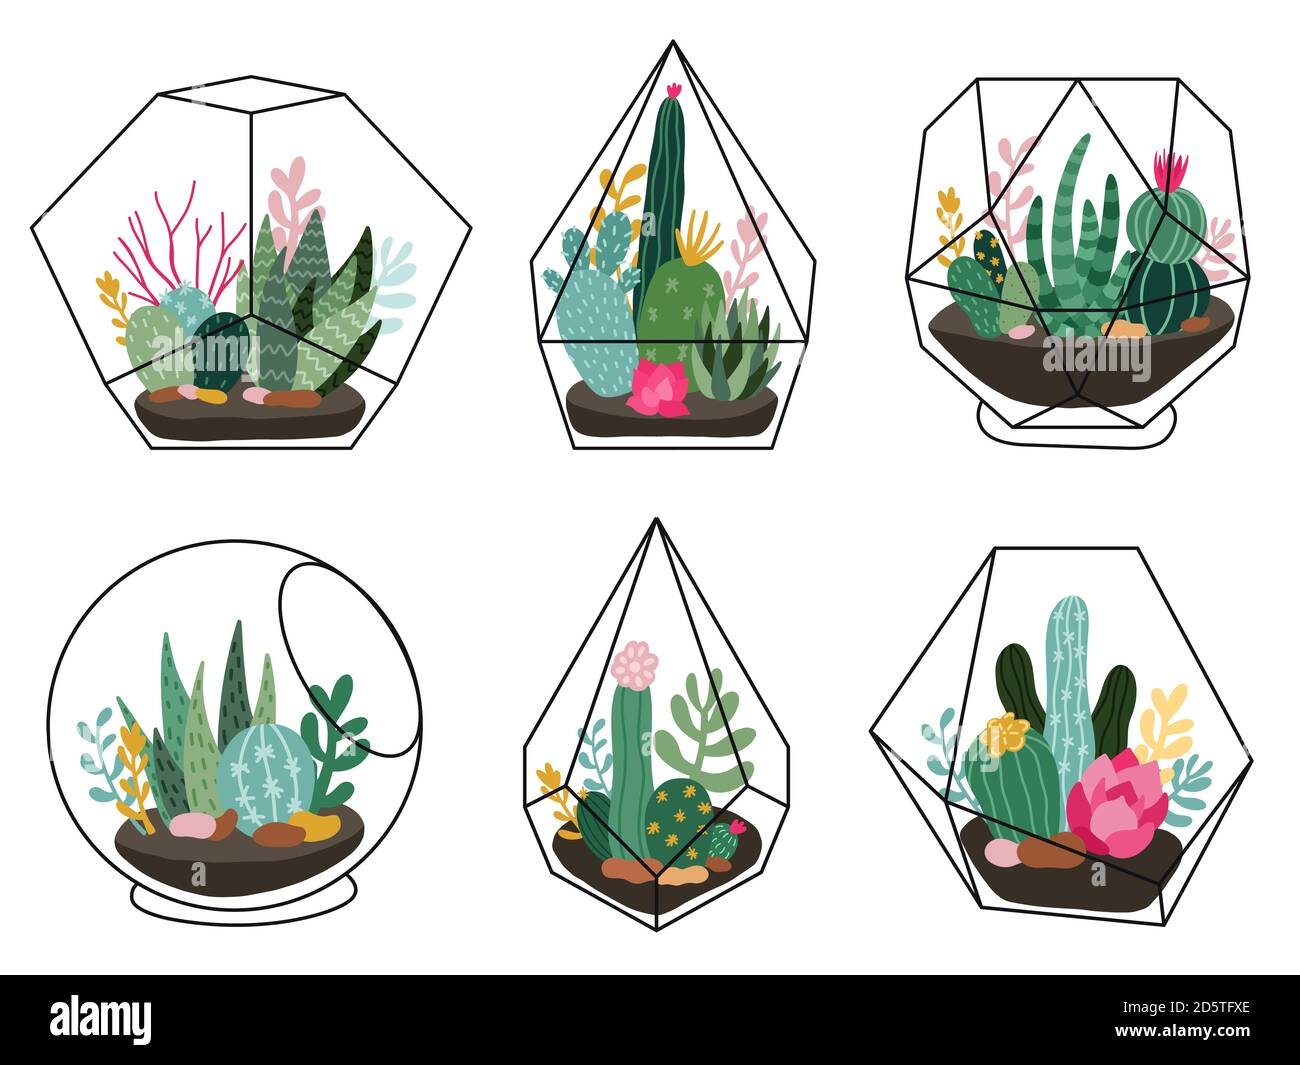 Terrarium Plants Geometric Succulent Cactus Terrariums Hand Drawn Terrariums With Exotic Plants Scandinavian Style Vector Illustration Set Stock Vector Image Art Alamy